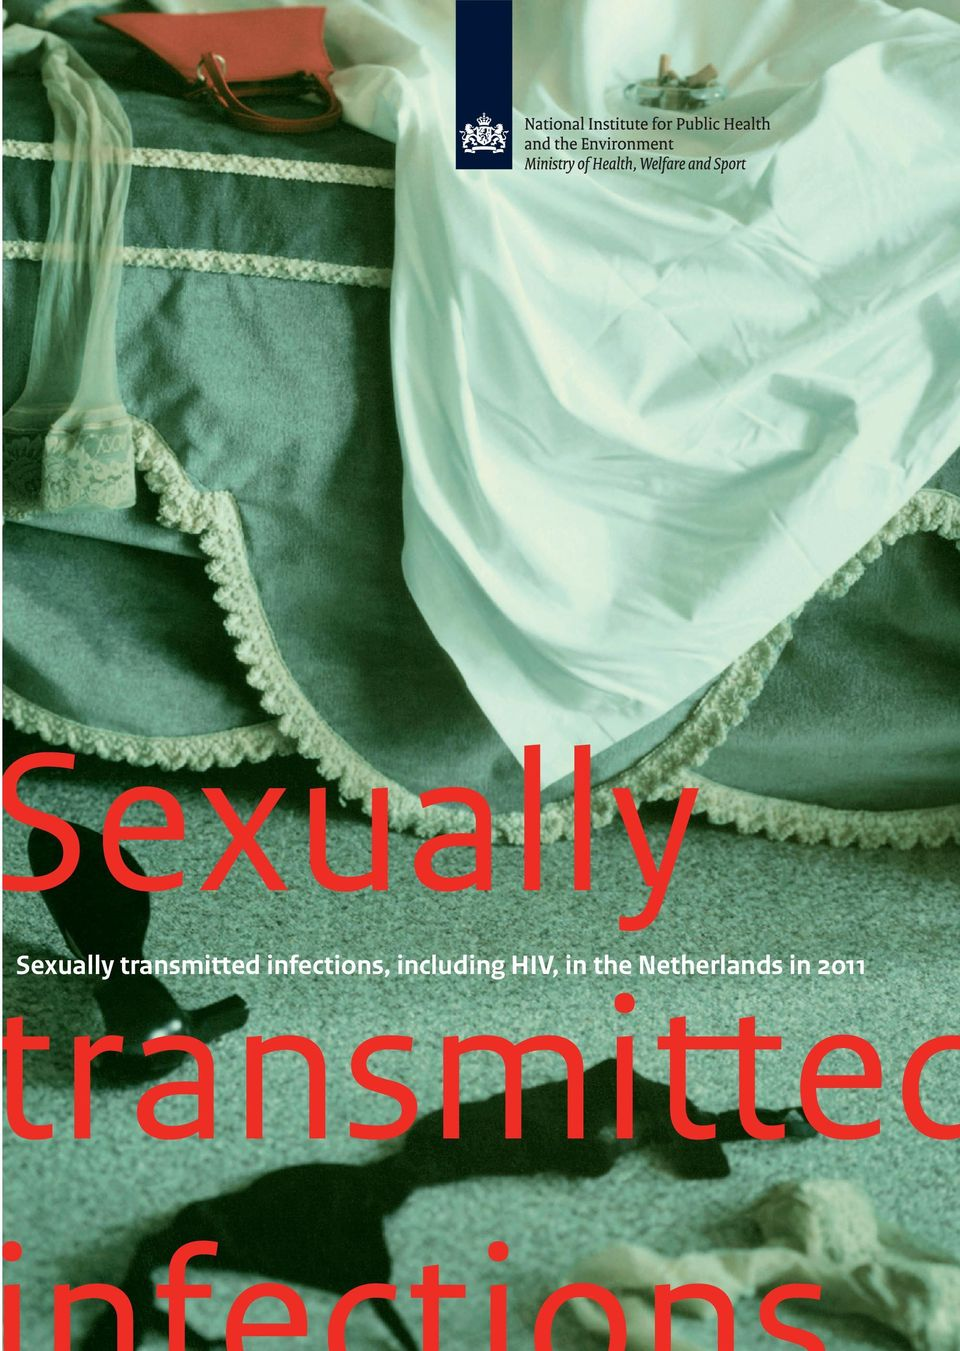 van der Sande Sexually transmitted Published by: National Institute for Public